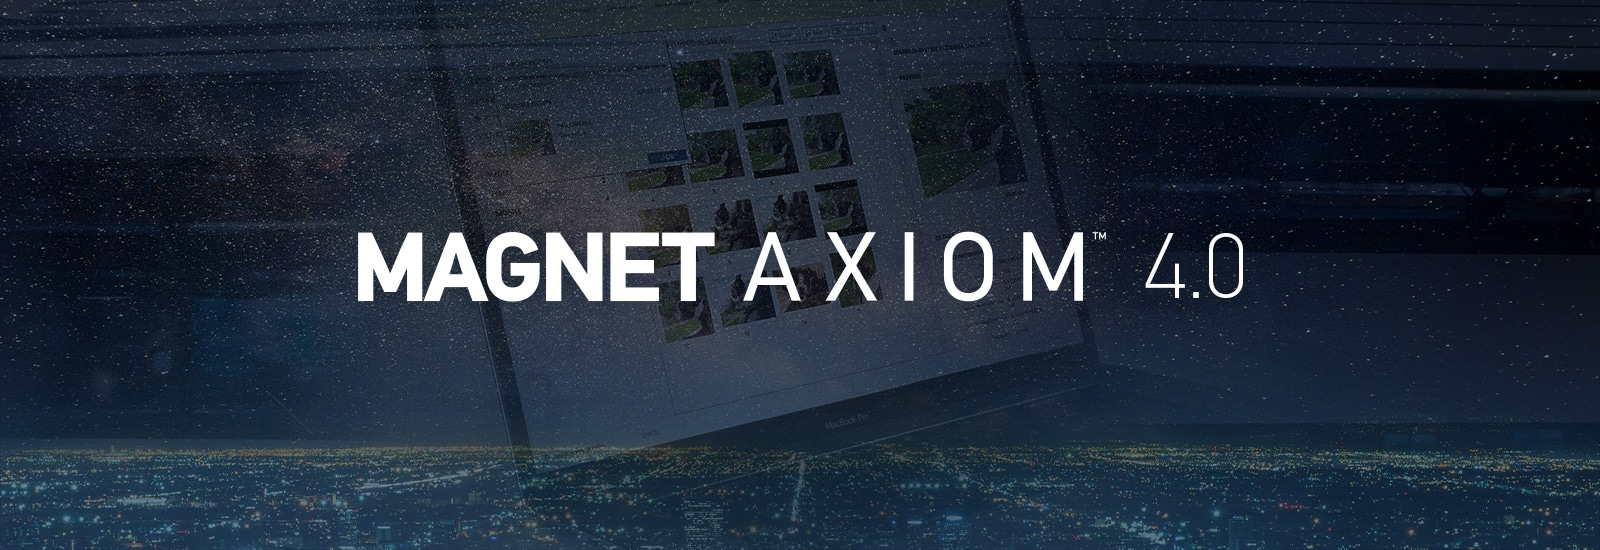 Faster. Flexible. Trusted. Magnet AXIOM 4.0 is the Strongest Version of AXIOM Yet